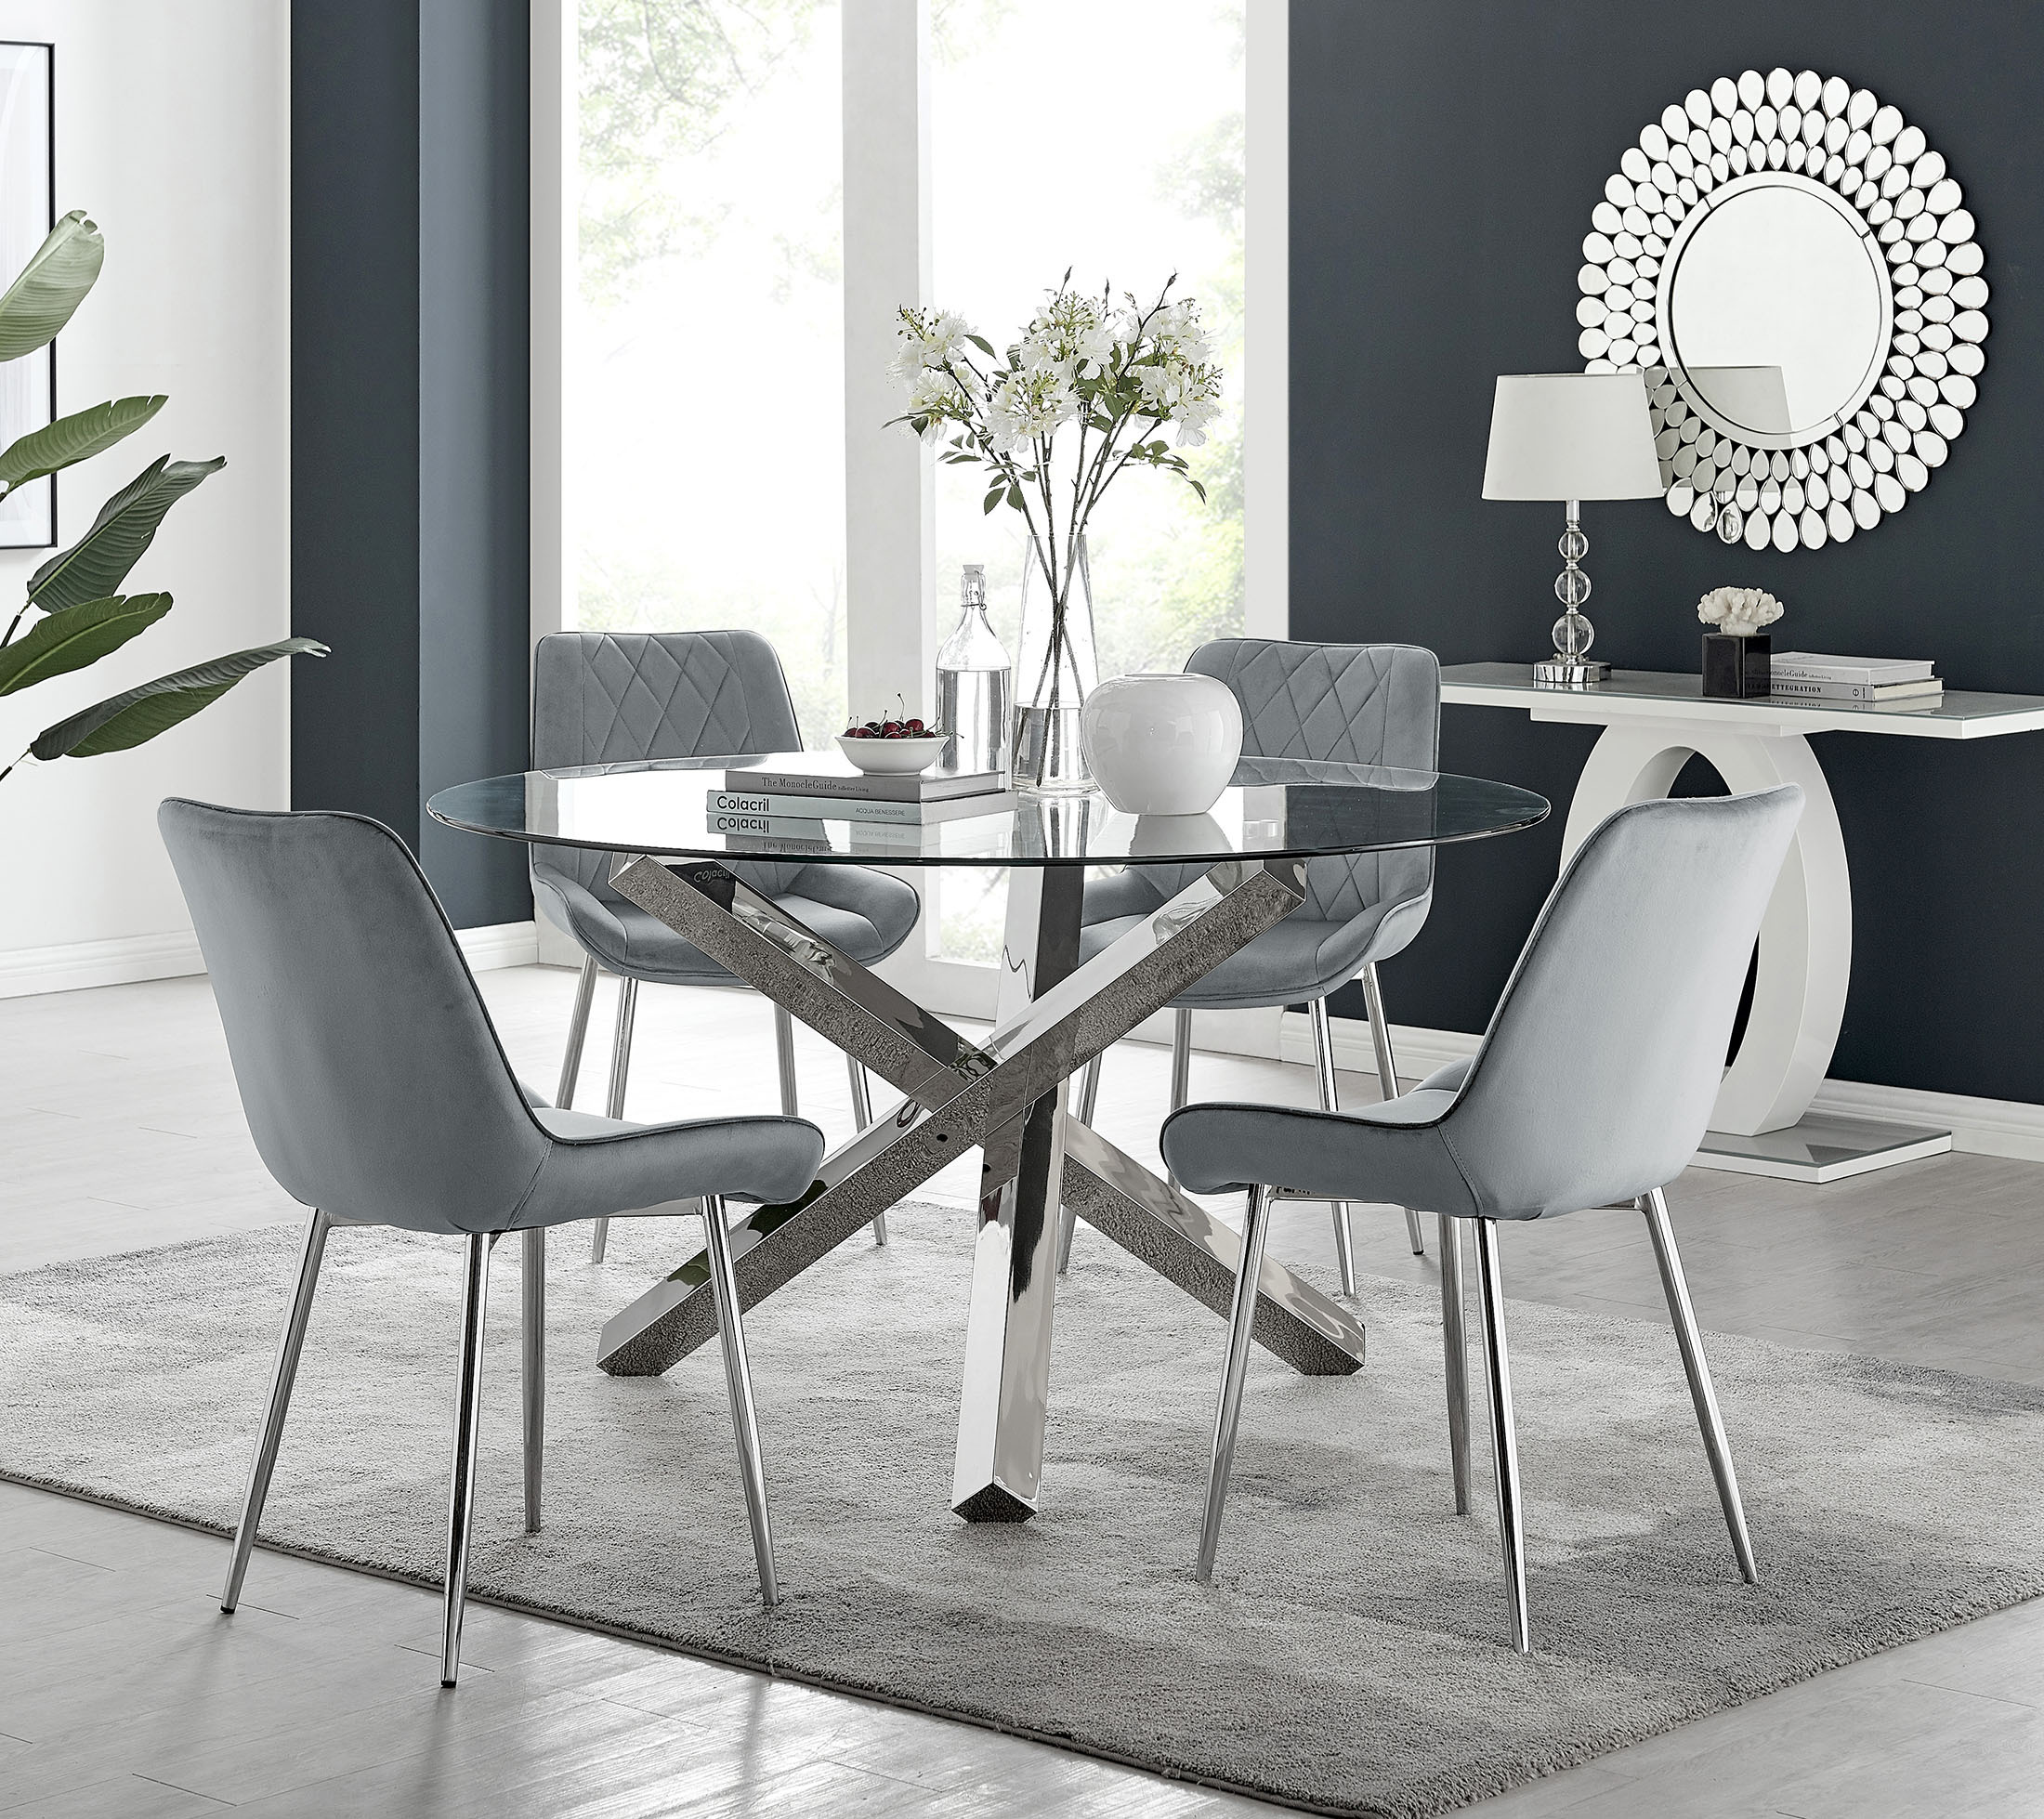 Vogue Round Dining Table And 6 Pesaro Silver Leg Chairs Furniturebox